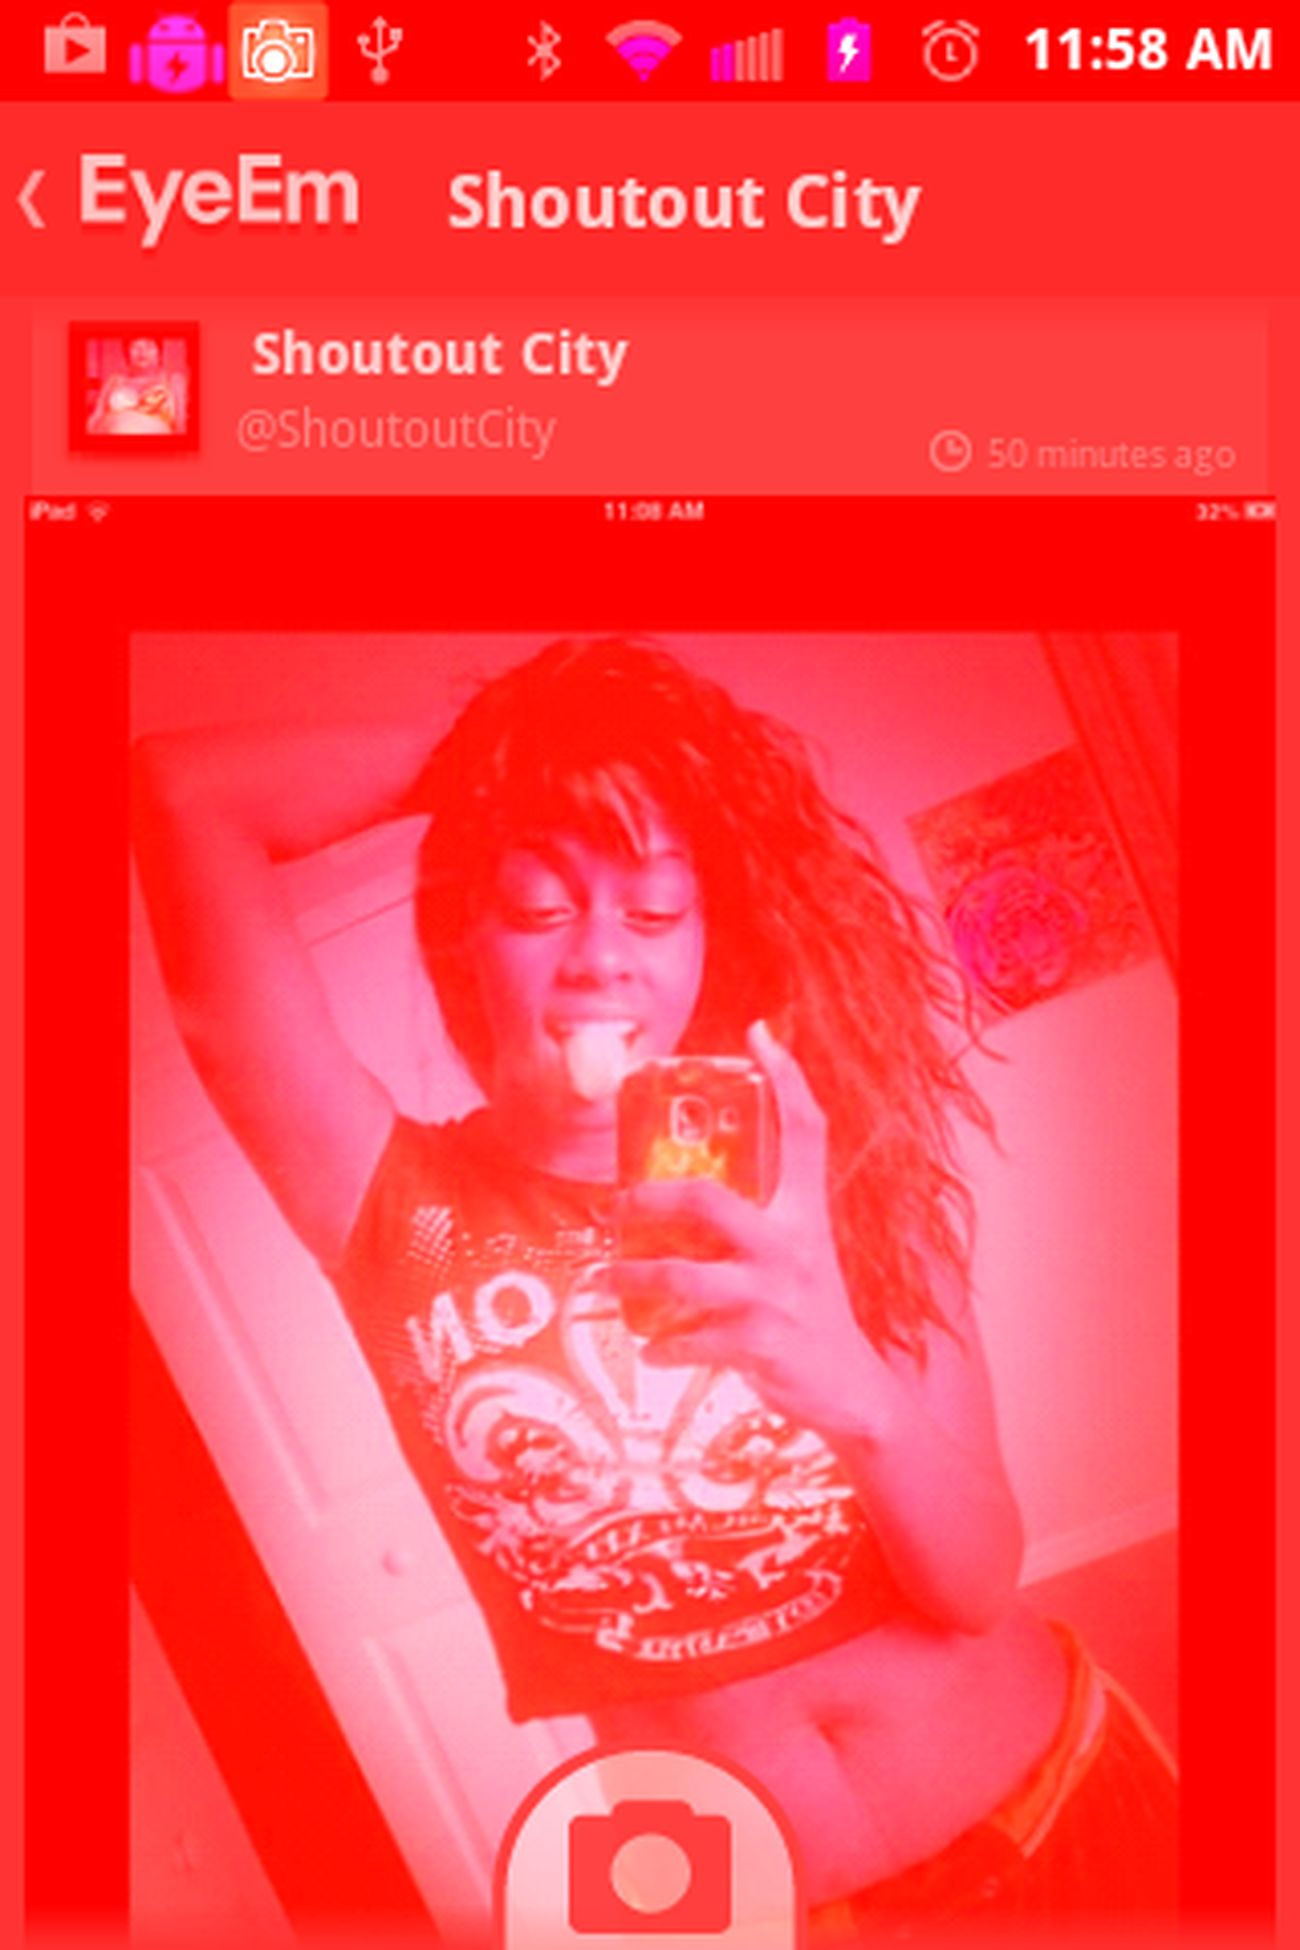 Ayy lol idk y the damn screen shot came out red tho lol they stealin people pics n shit -.- but ayy un asked for shout out lmao ^_^ Cute ShoutOut Thank You!! Shoutout City!!